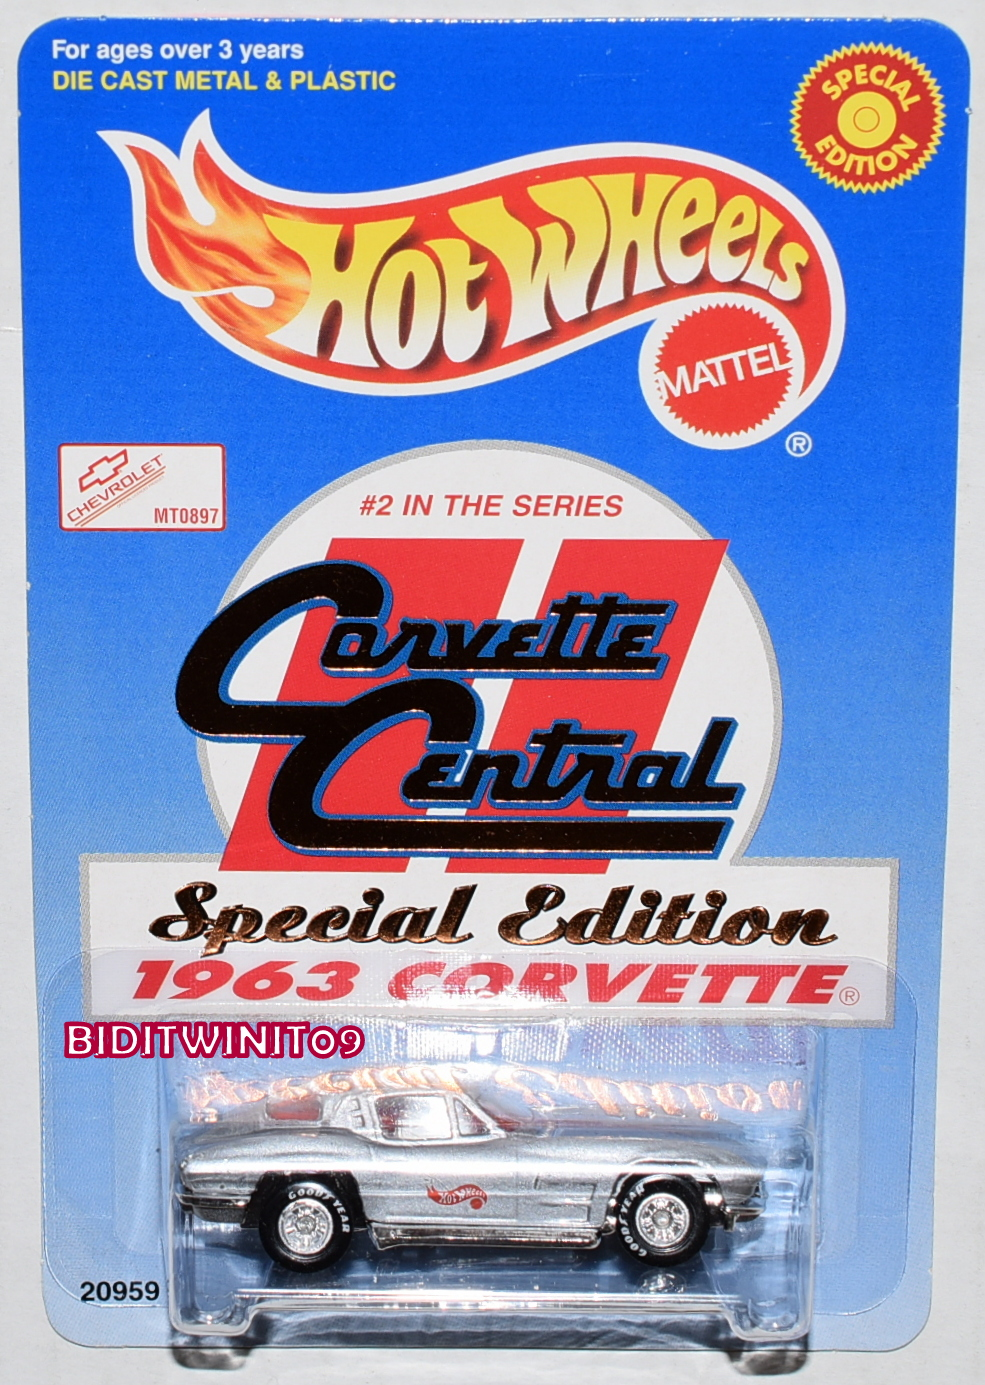 HOT WHEELS 1998 CORVETTE CENTRAL SPECIAL EDITION 1963 CORVETTE #2